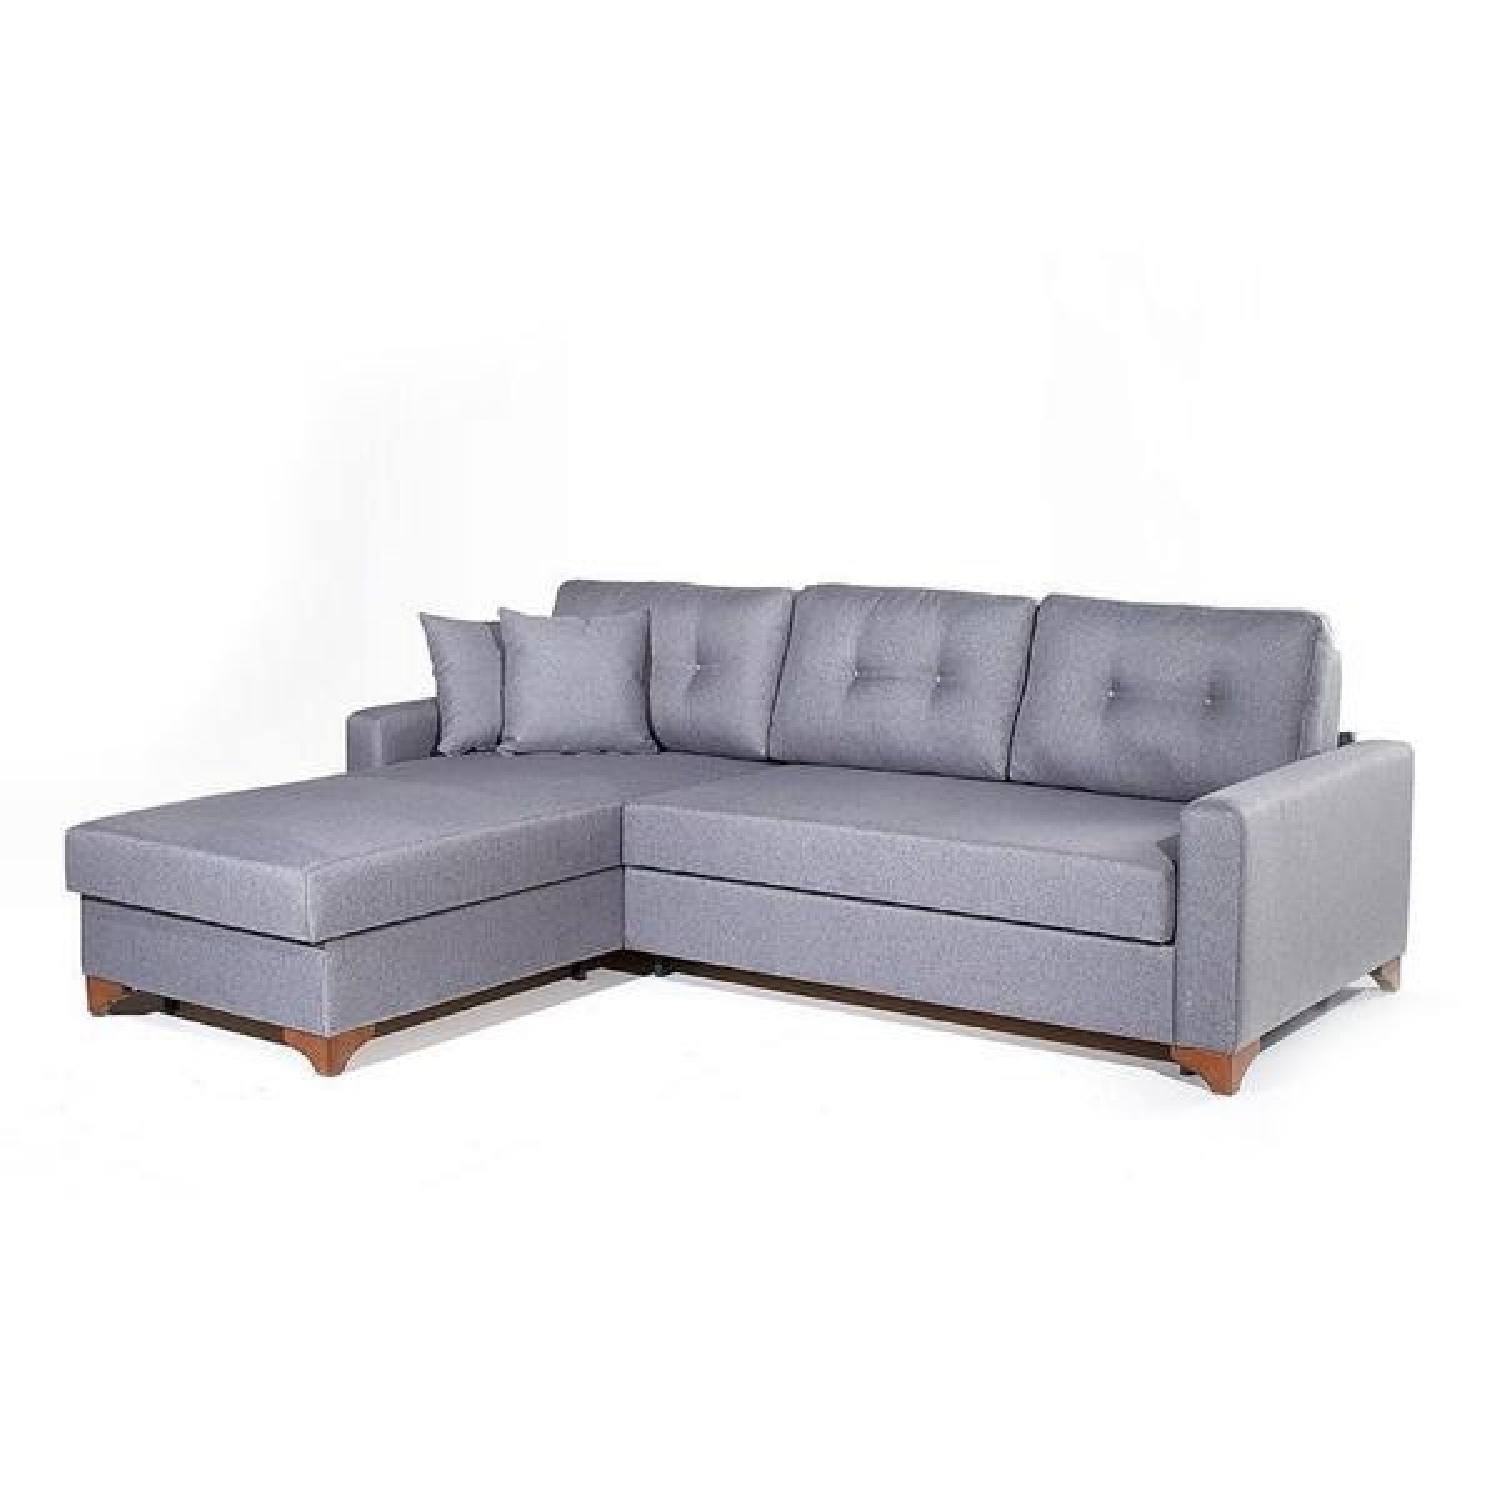 Sleeper Sectional Sofa w Storage AptDeco